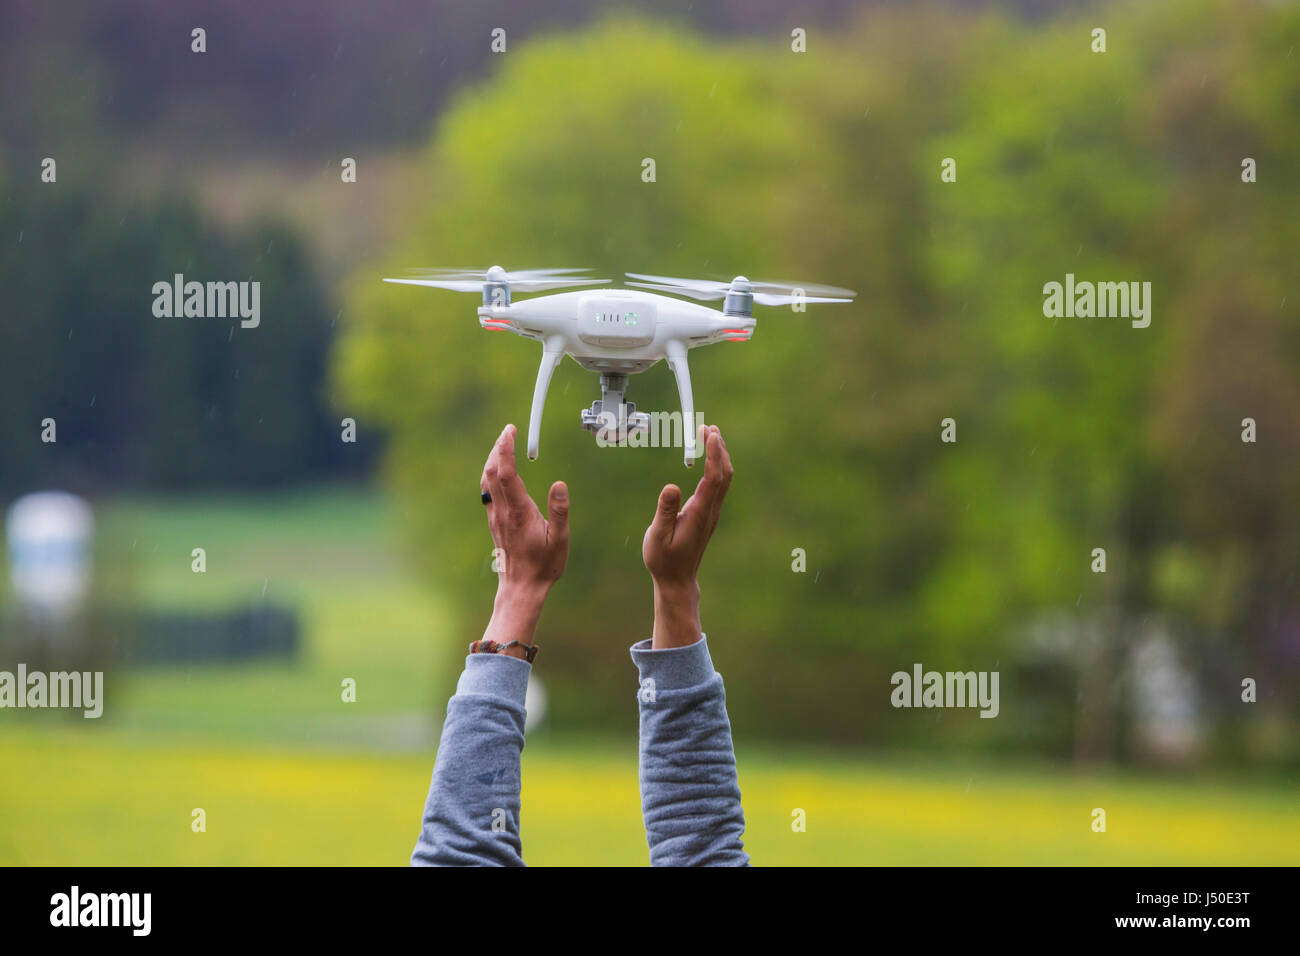 Drone of type DJI Phantom 4 at landing approach, is caught. - Stock Image